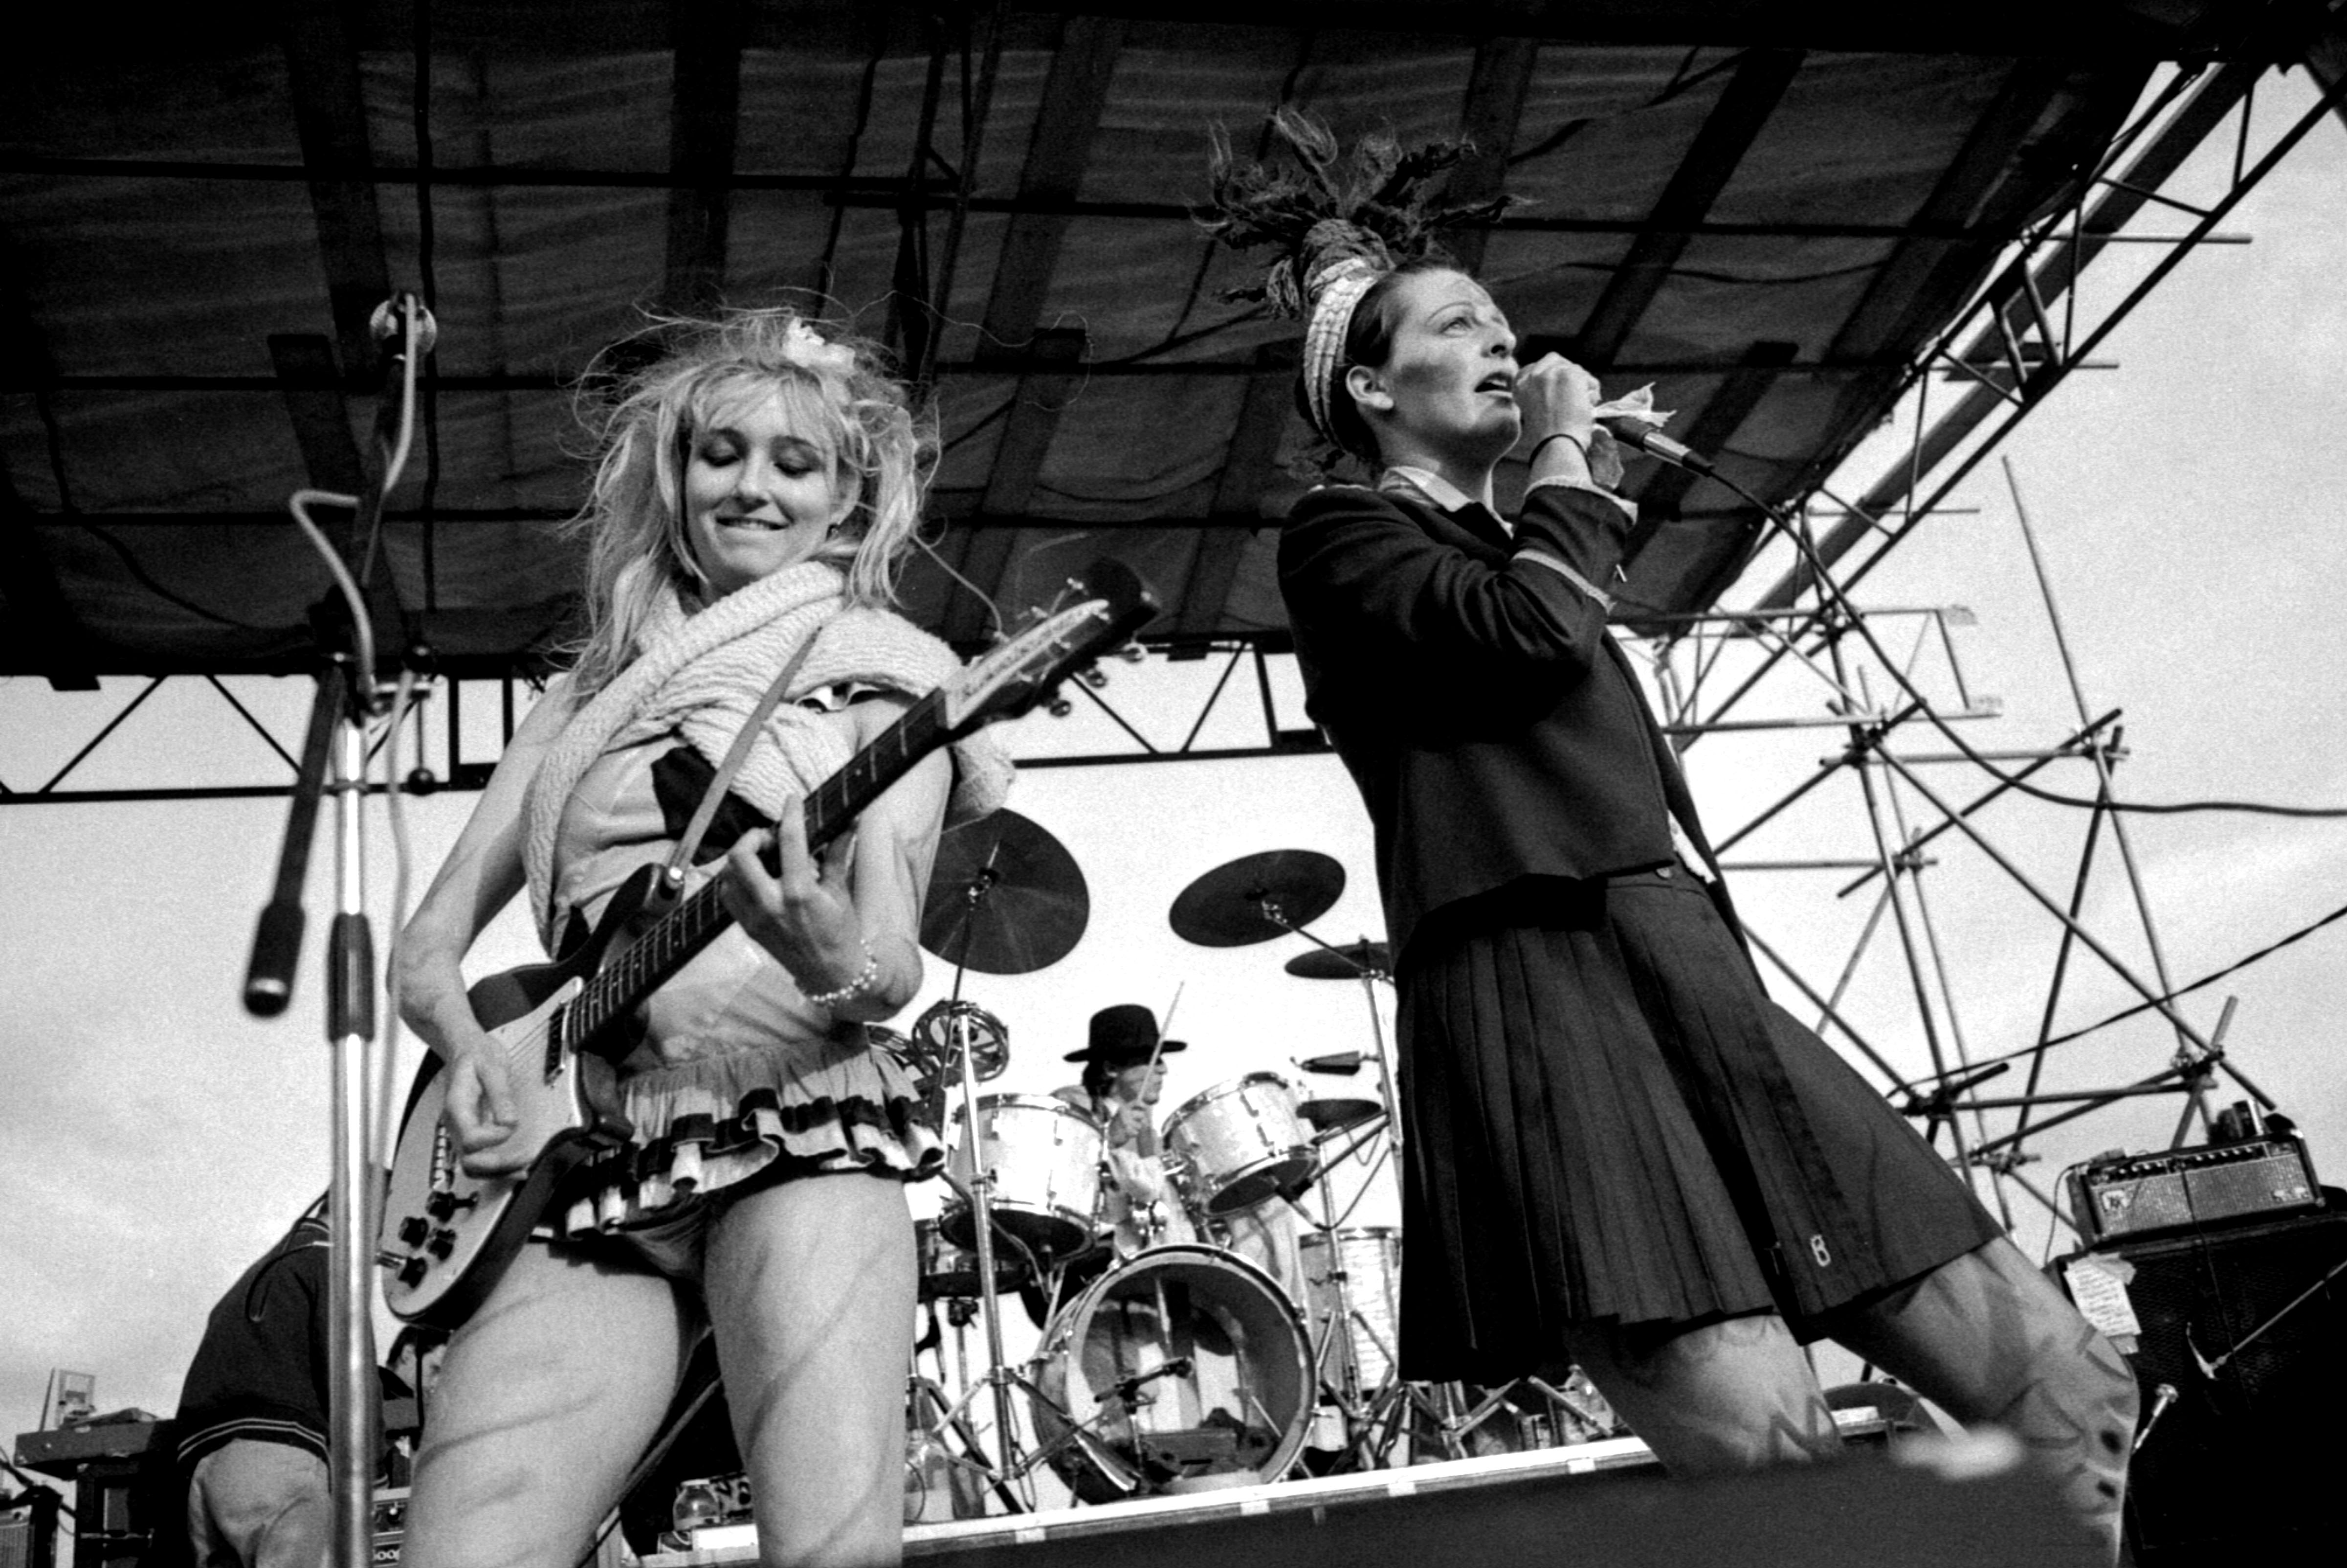 The Slits: Viv Albertine, Bruce Smith, Ari Up